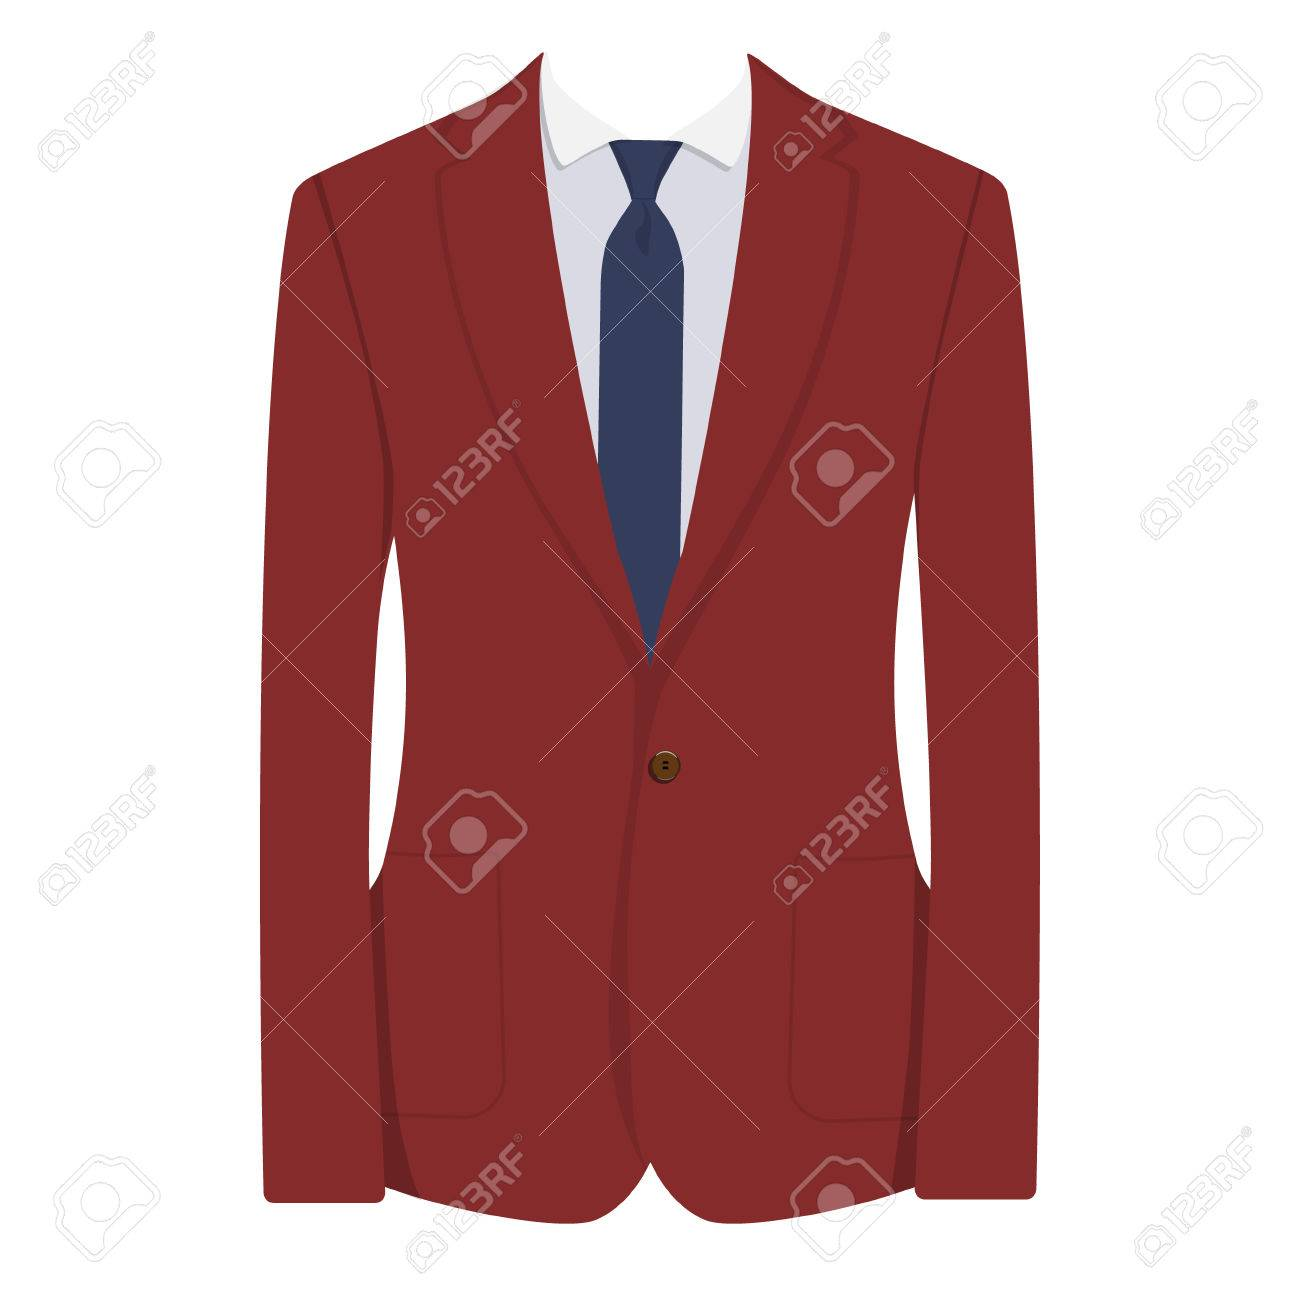 80082855 Illustration - Raster illustration of red, bordo man suit with blue tie and white  shirt isolated on white background. Business suit, business, mens suit, ...